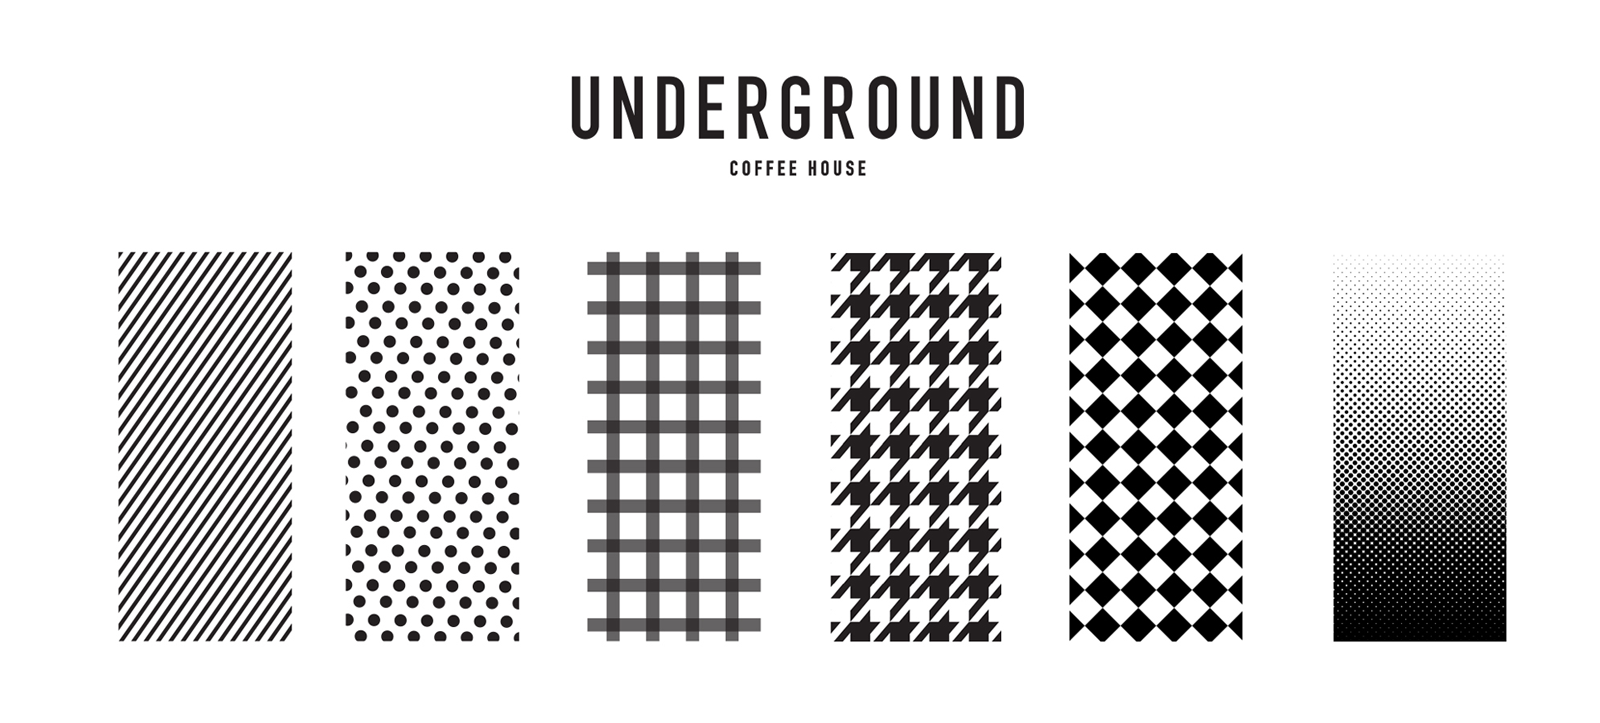 Diego Guevara - Underground  - Brand Patterns